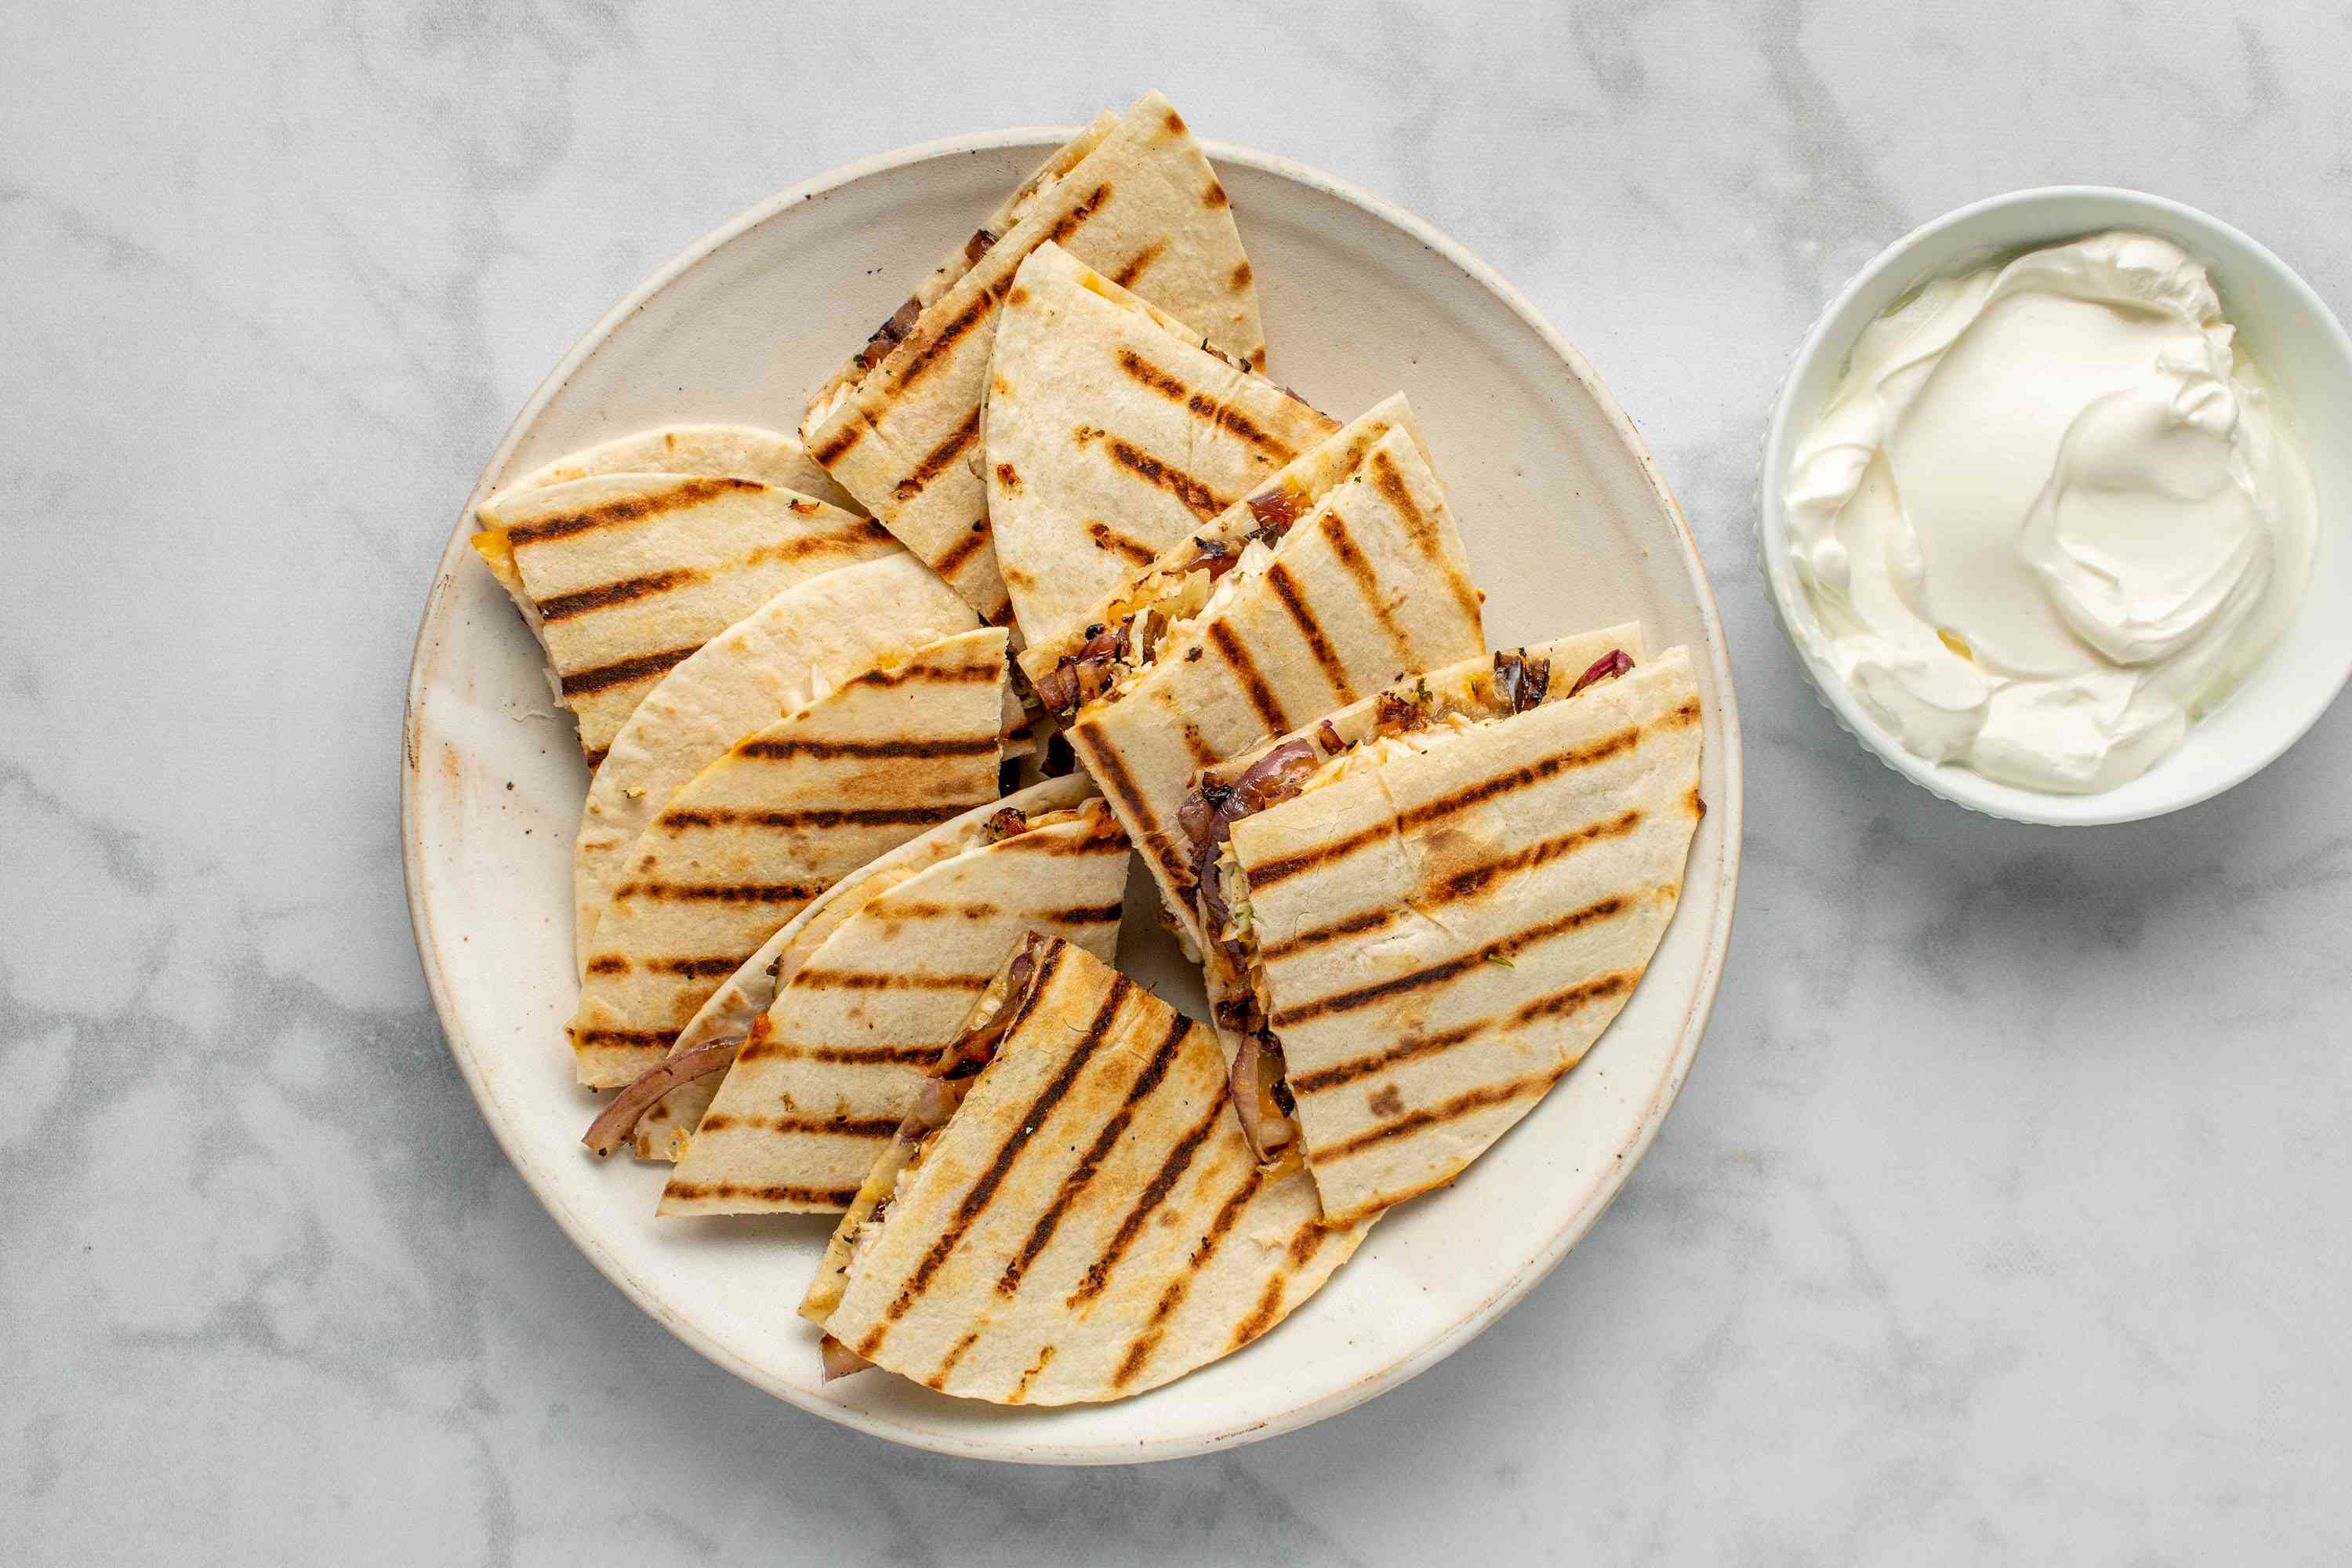 Grilled Chicken Quesadilla served with a side of sour cream